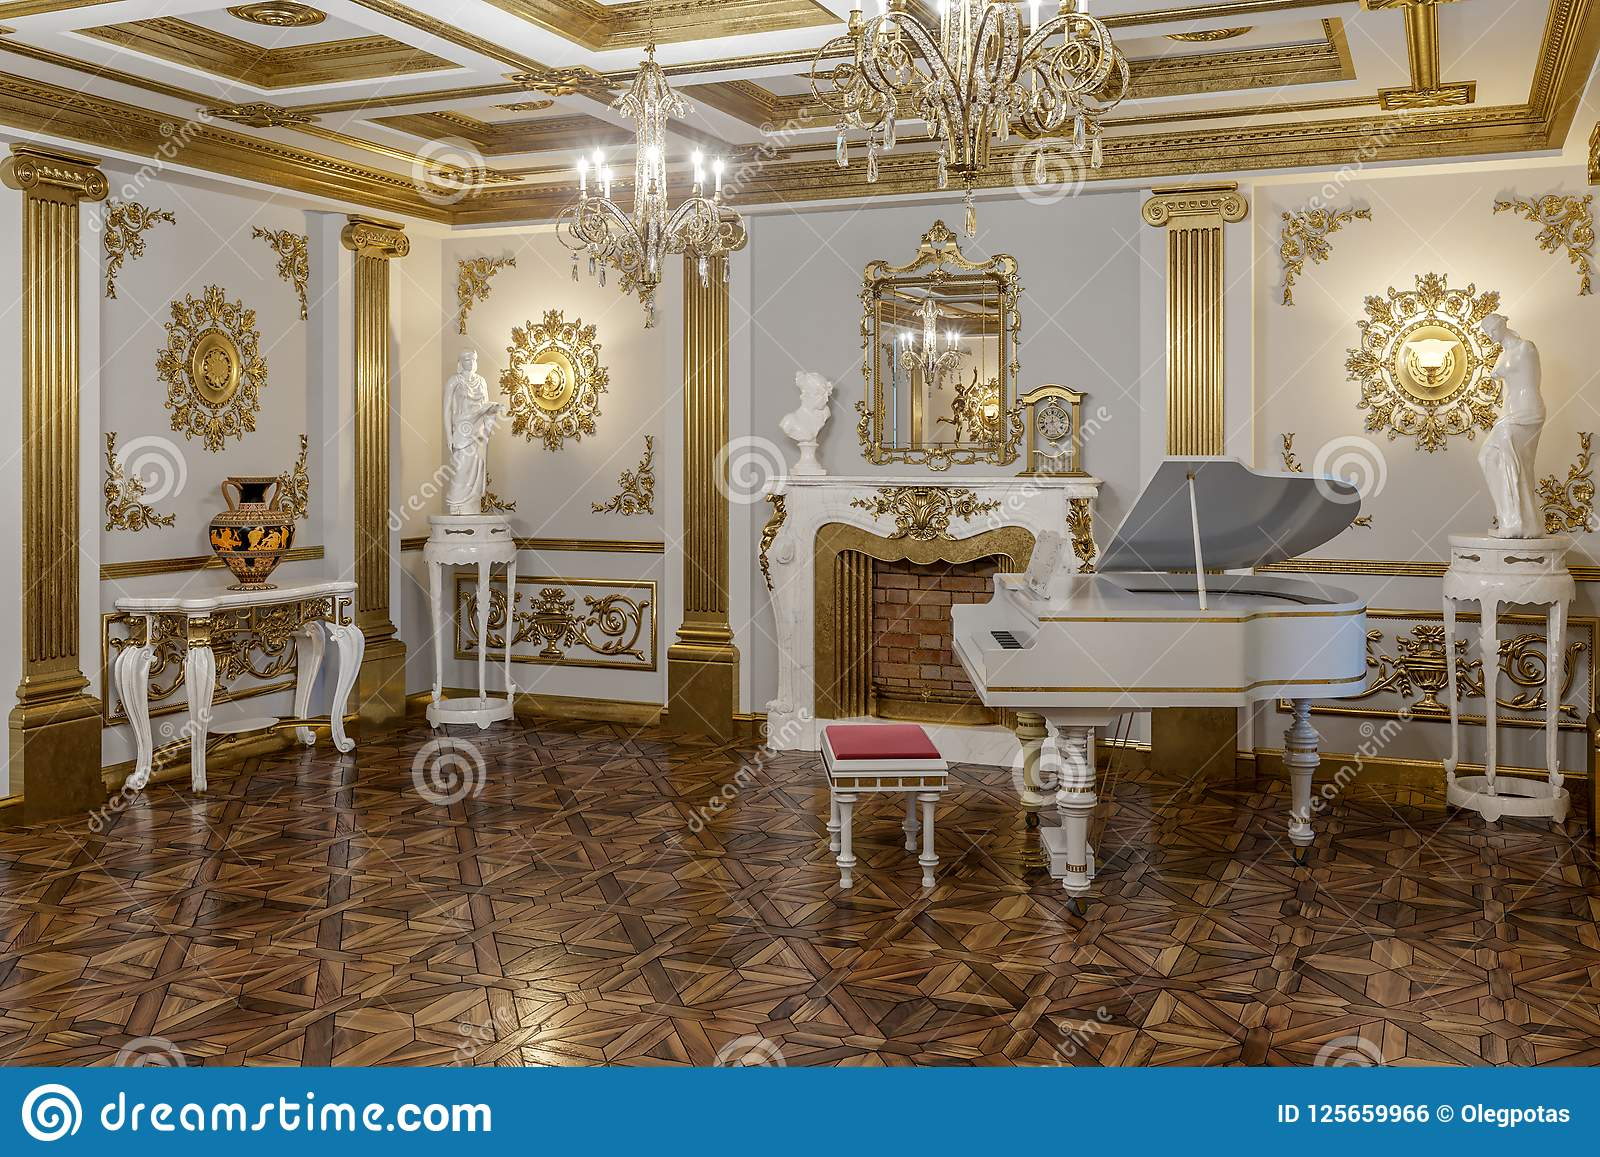 3d Rendering Of The Hall In Classical Style Cinema 4D Corona